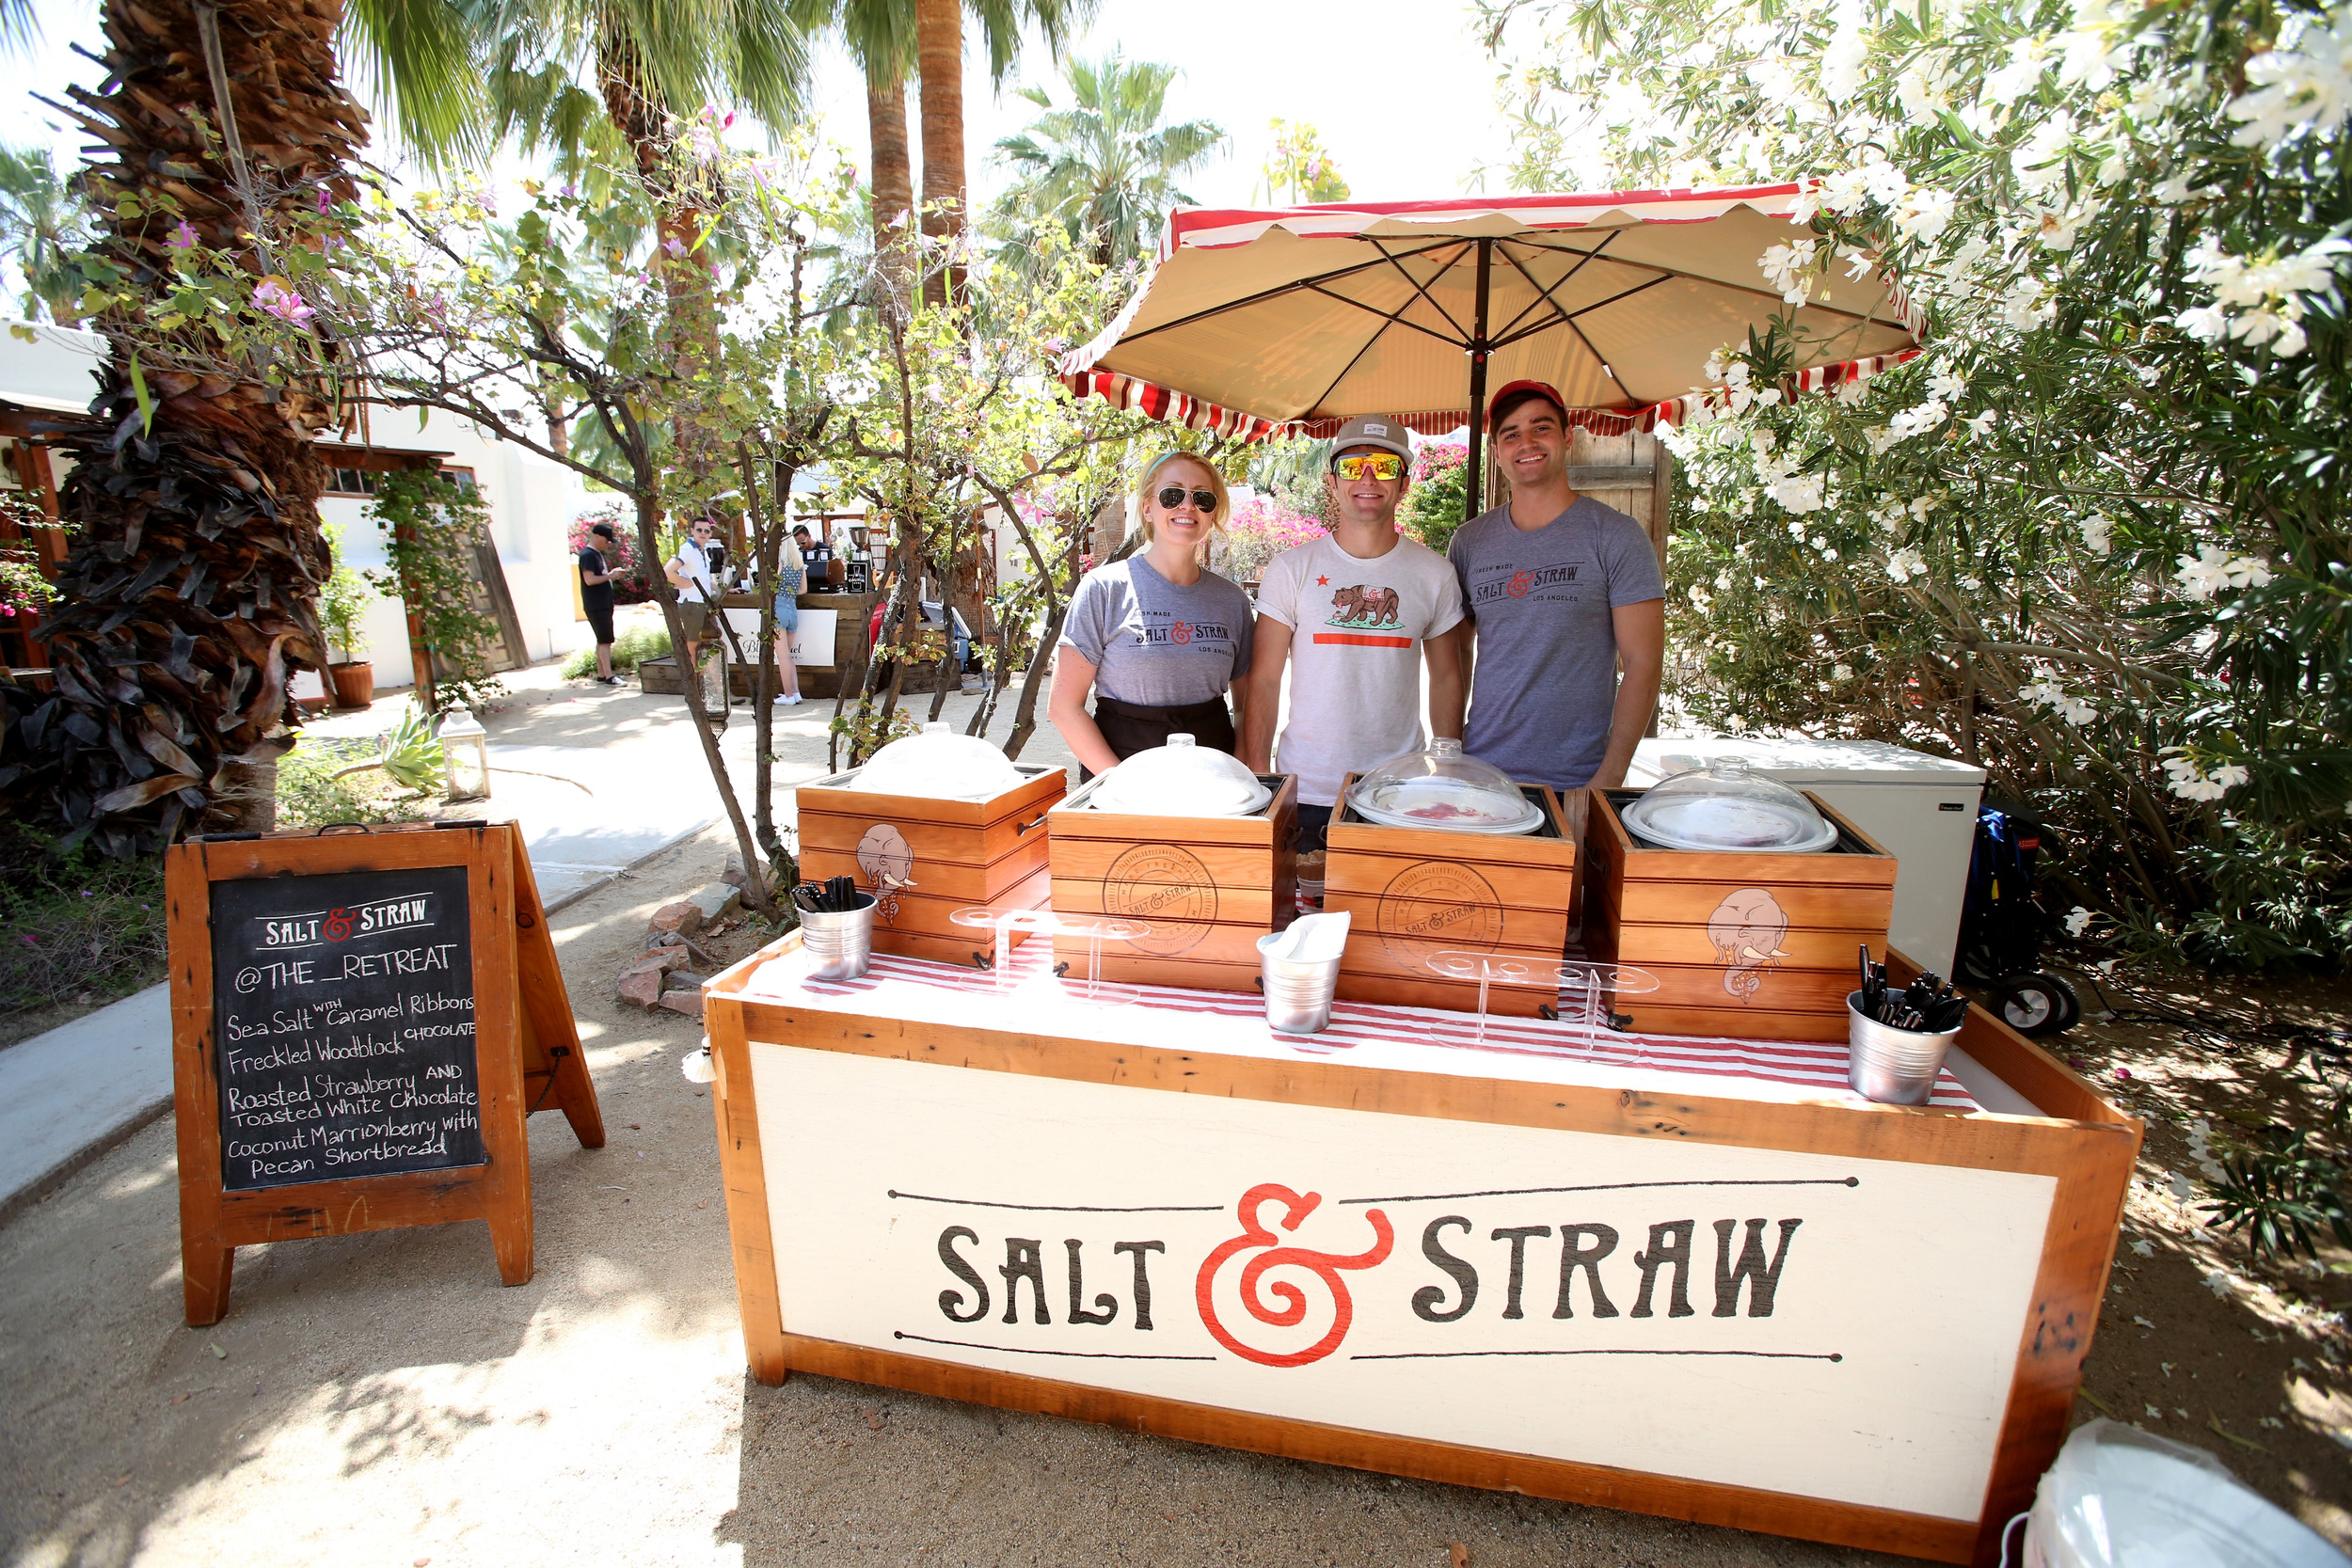 Salt & Straw |(Photo by Jonathan Leibson/Getty Images)